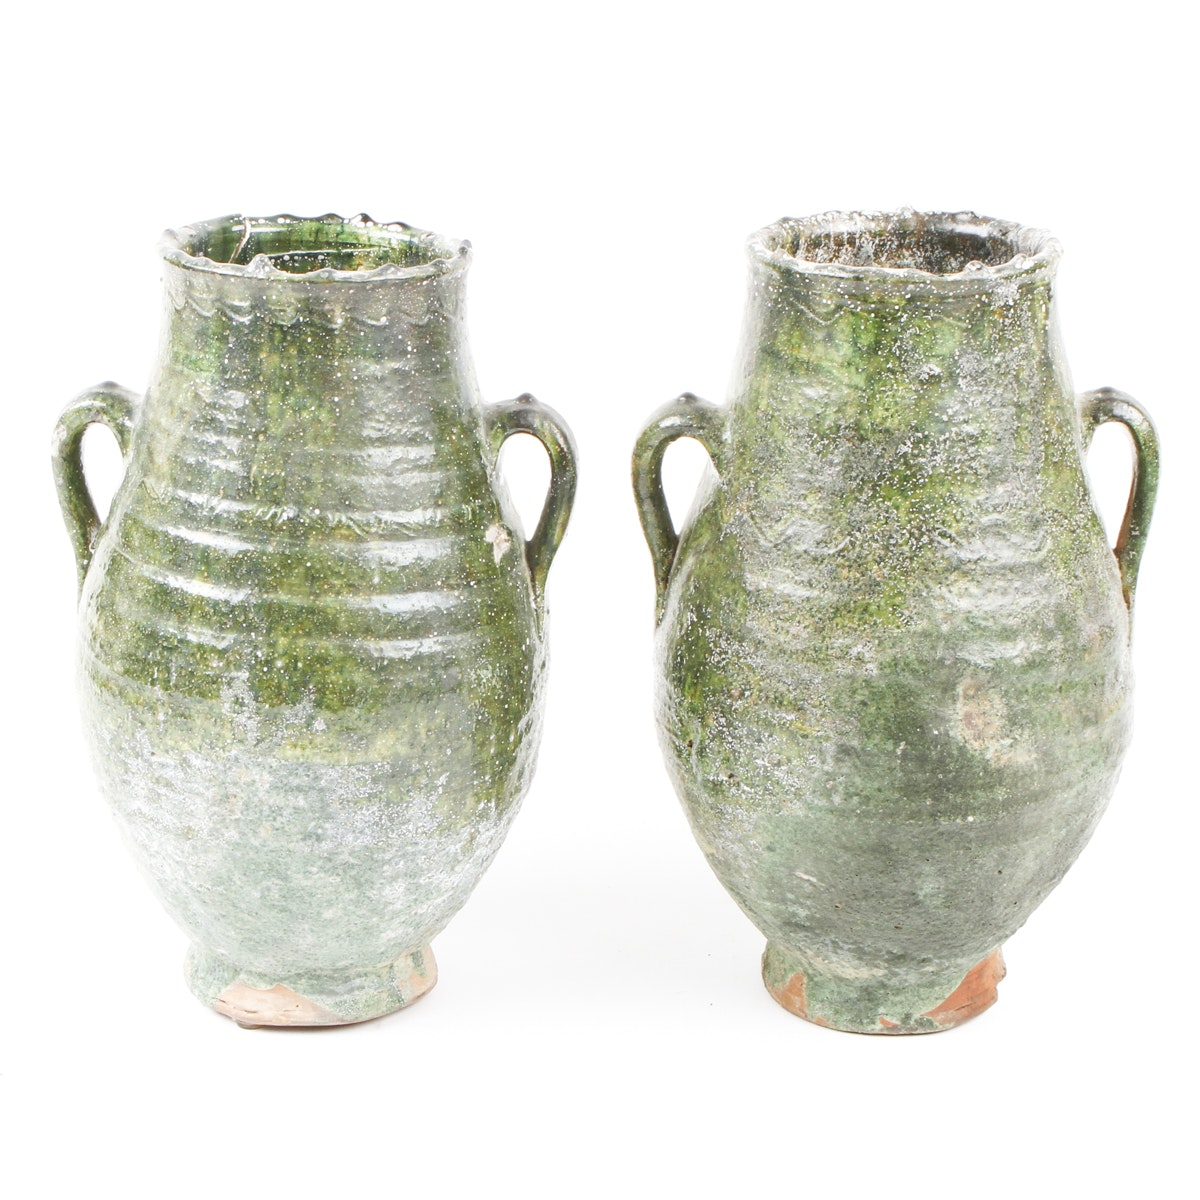 Pair of Green Pottery Vases